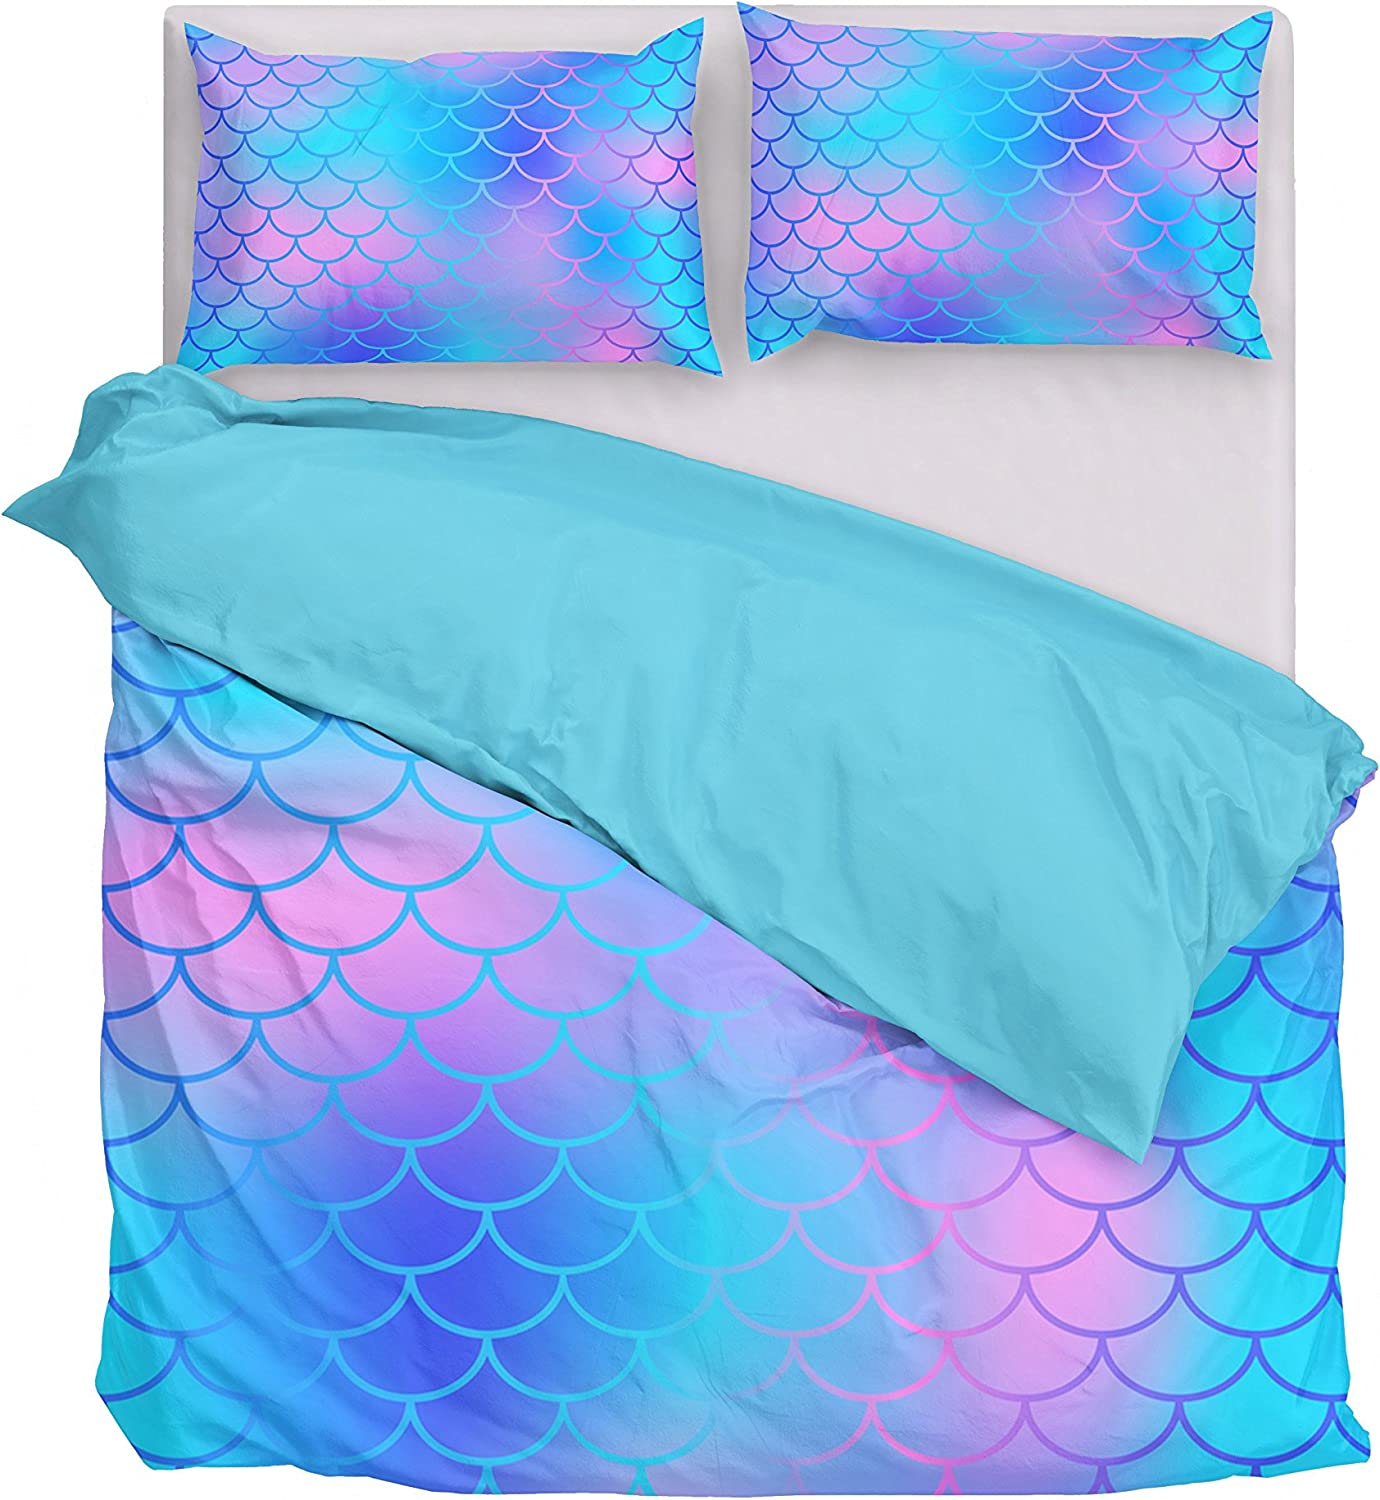 Amazon Com Dream Bay 3 Piece Duvet Cover Set Mermaid Fish Scales Printed Pattern Comforter Cover With Zippper Closure Duvet Cover With 2 Pillow Shams Queen Home Kitchen